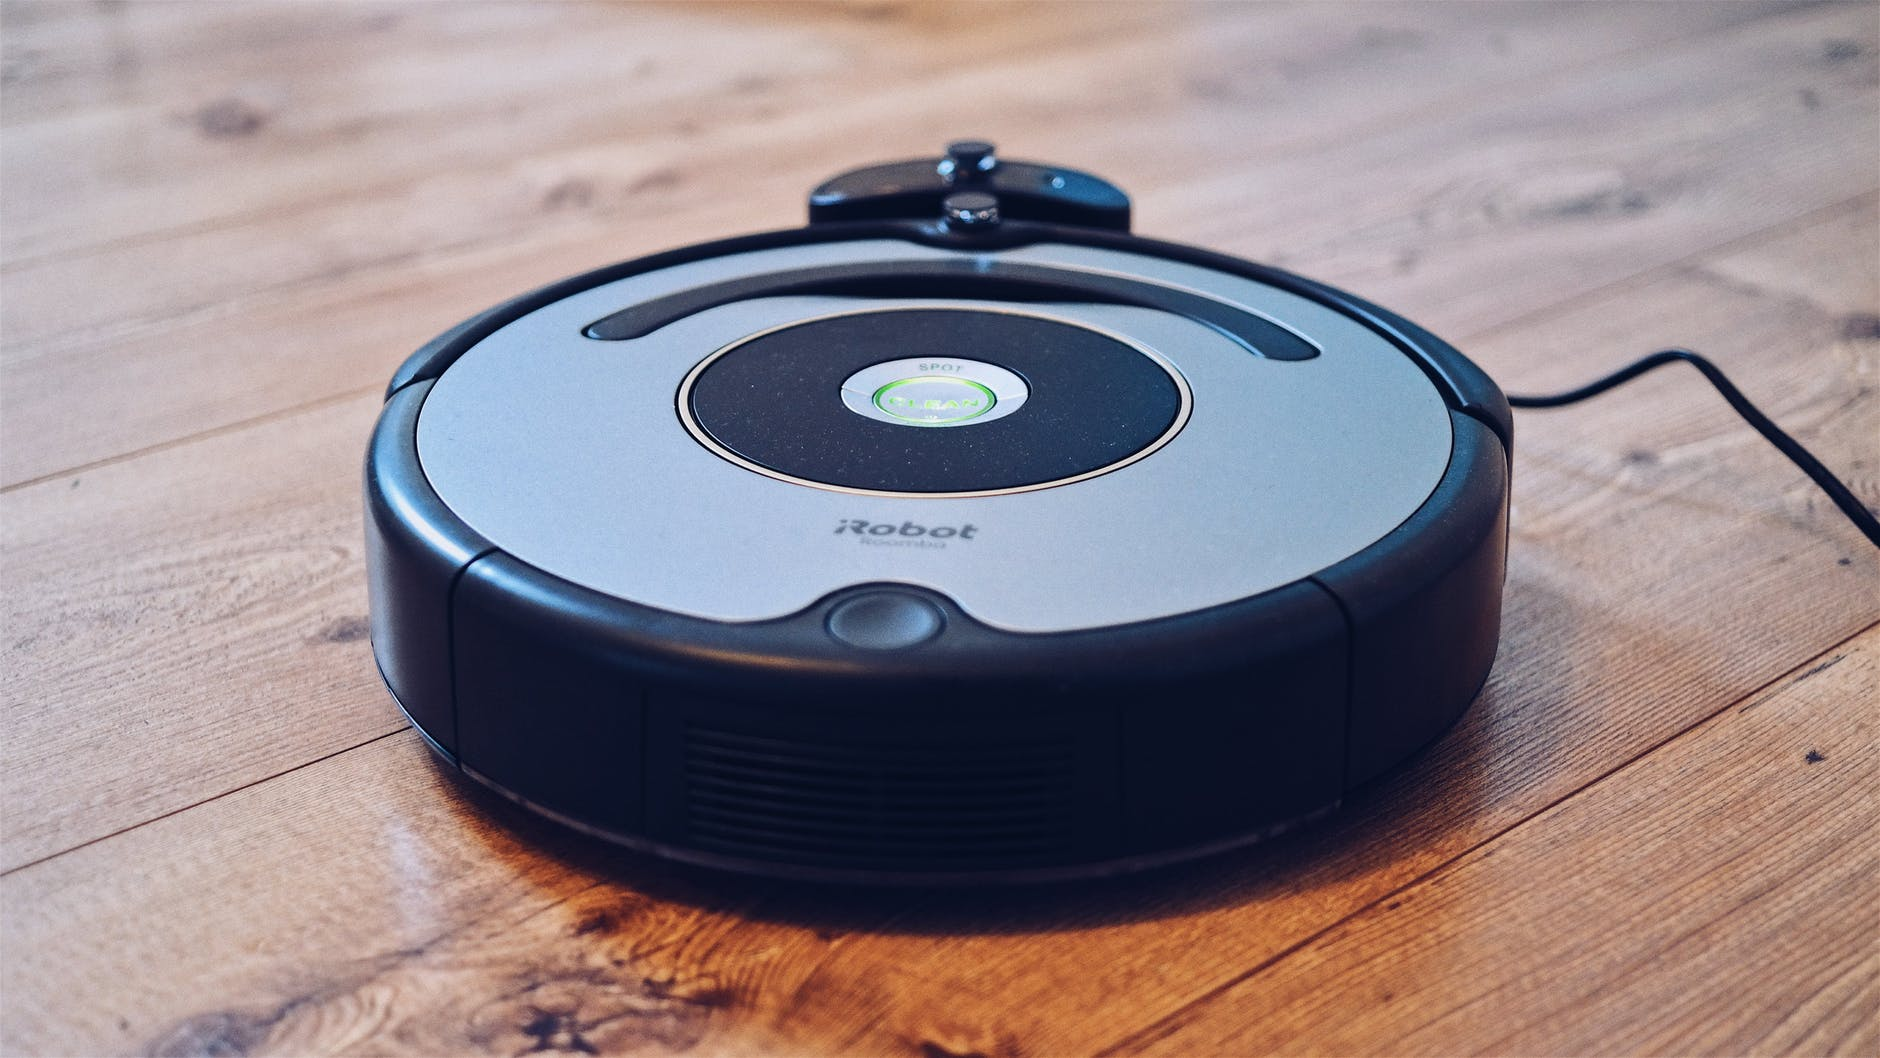 Roomba vacuum on hard wood floor